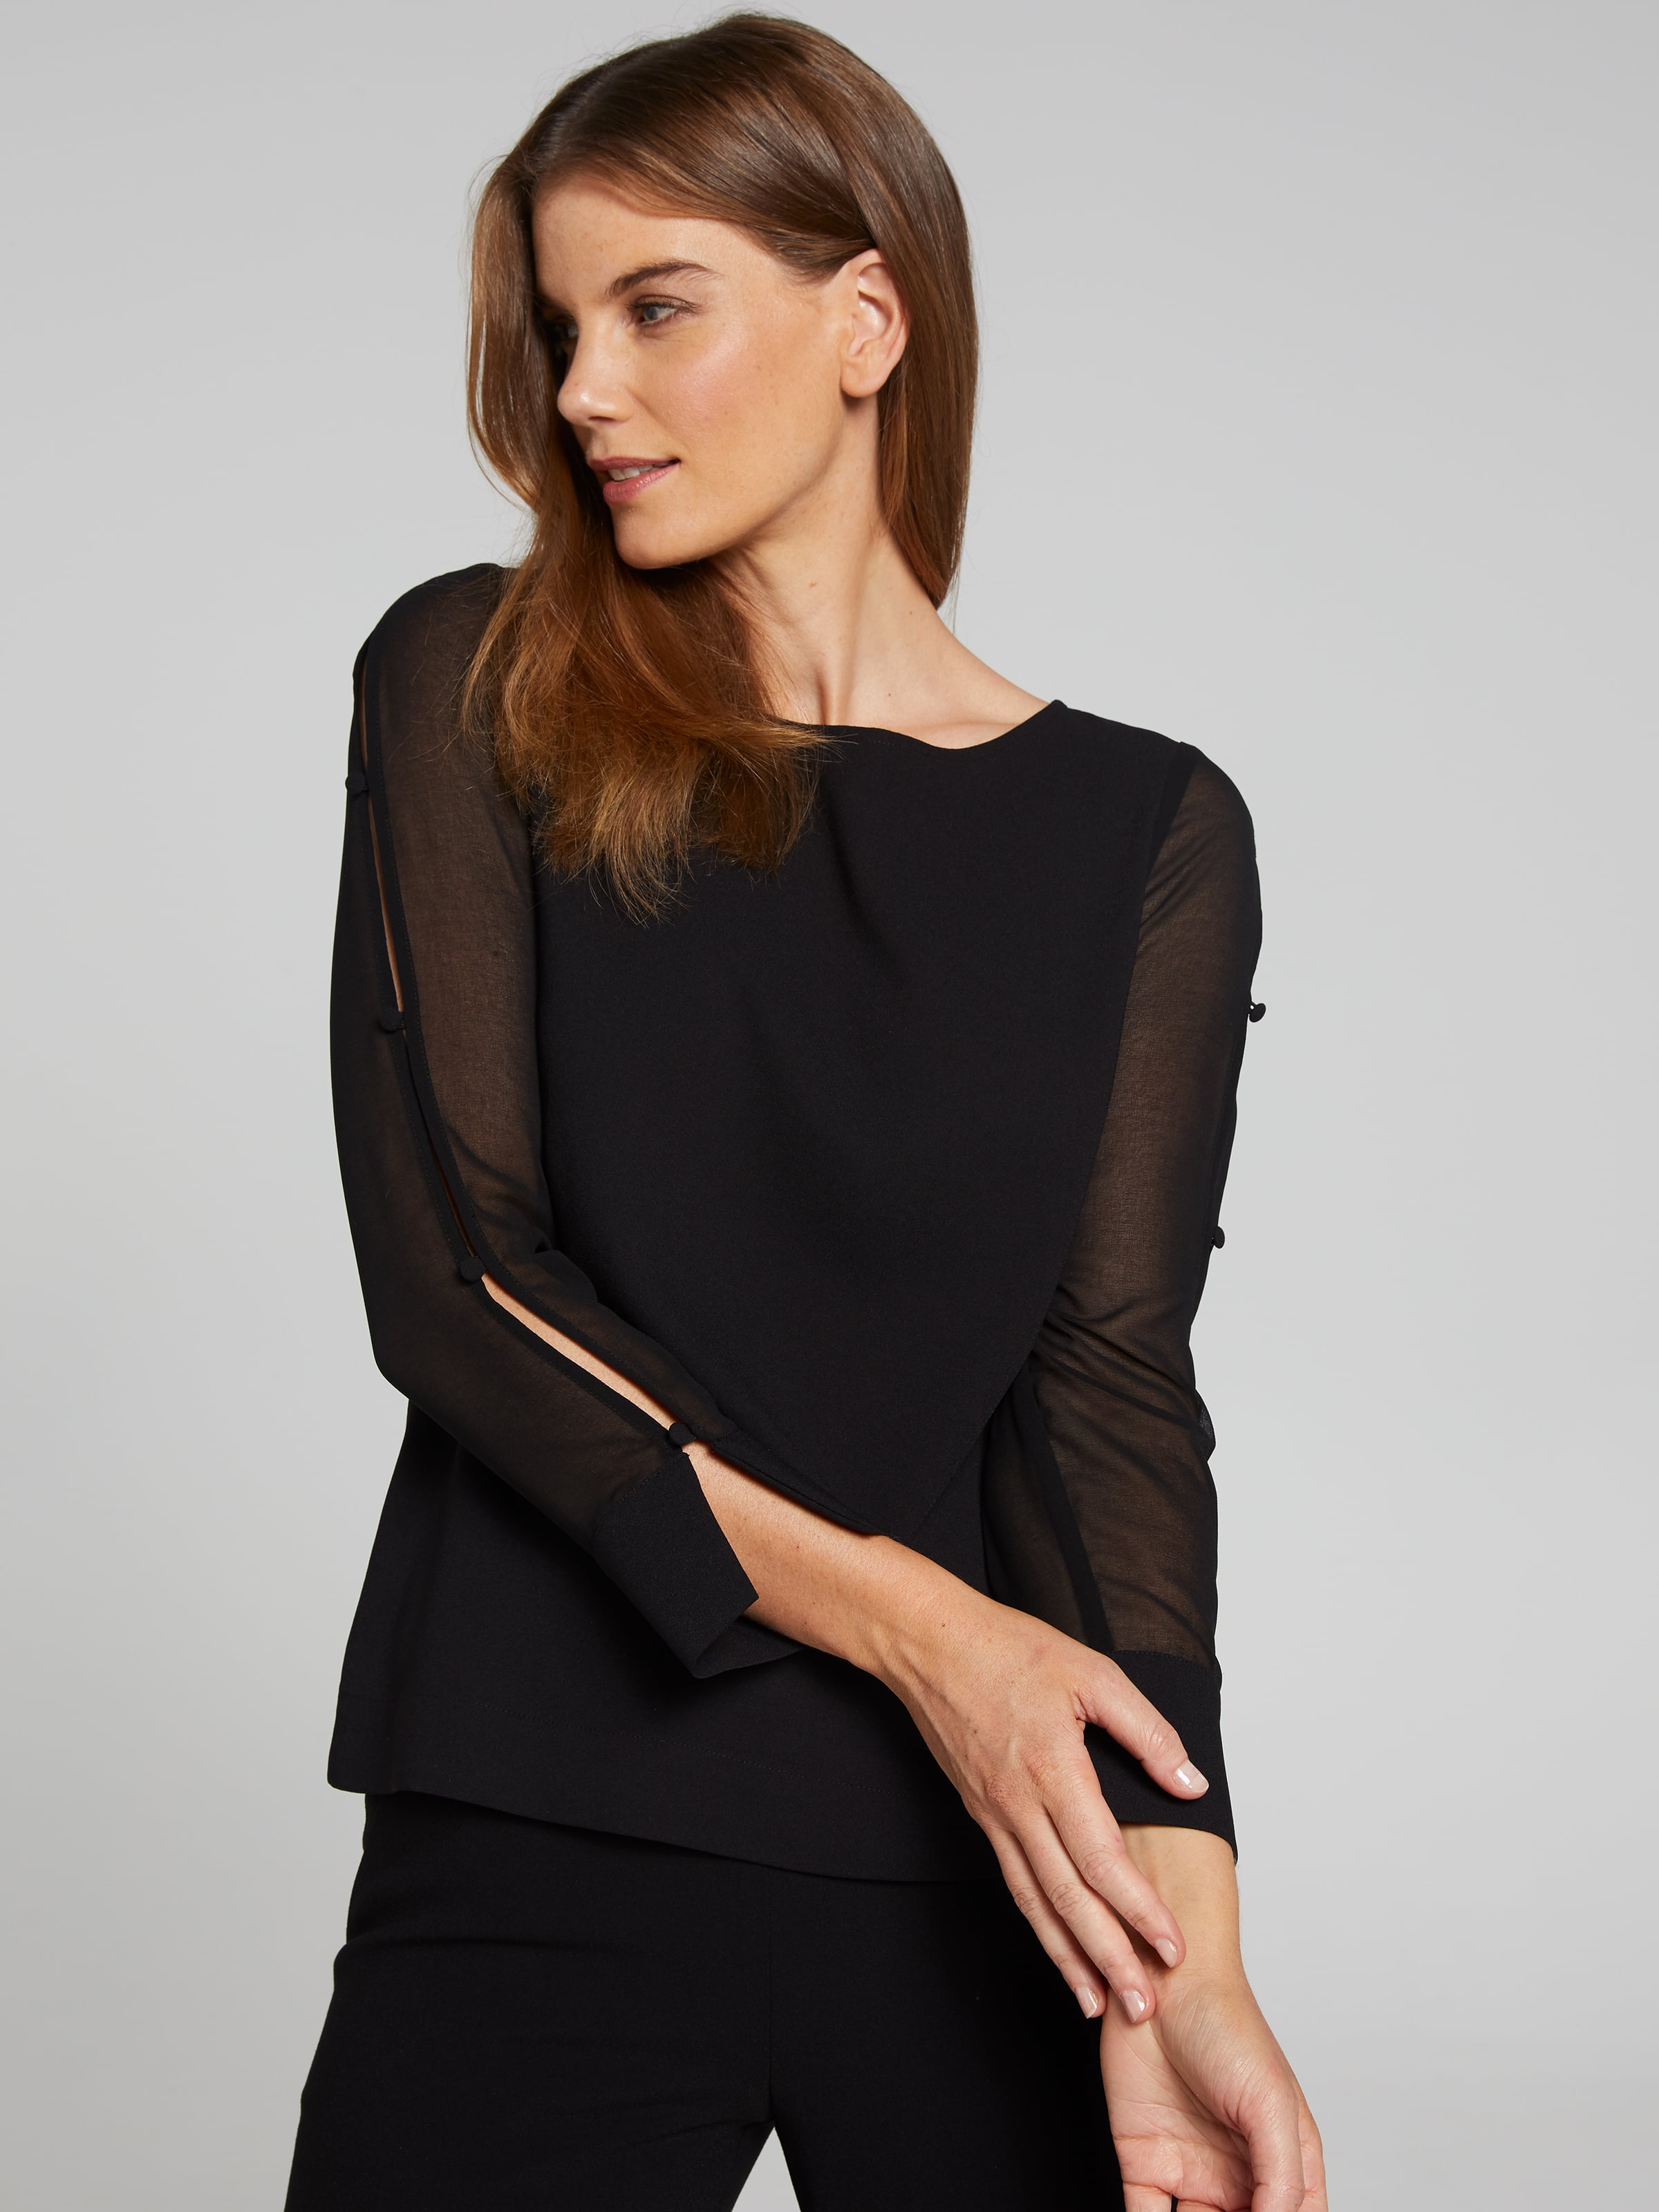 Image of Jacqui E Australia Jacqui E Sheer Sleeve Button Detail Top